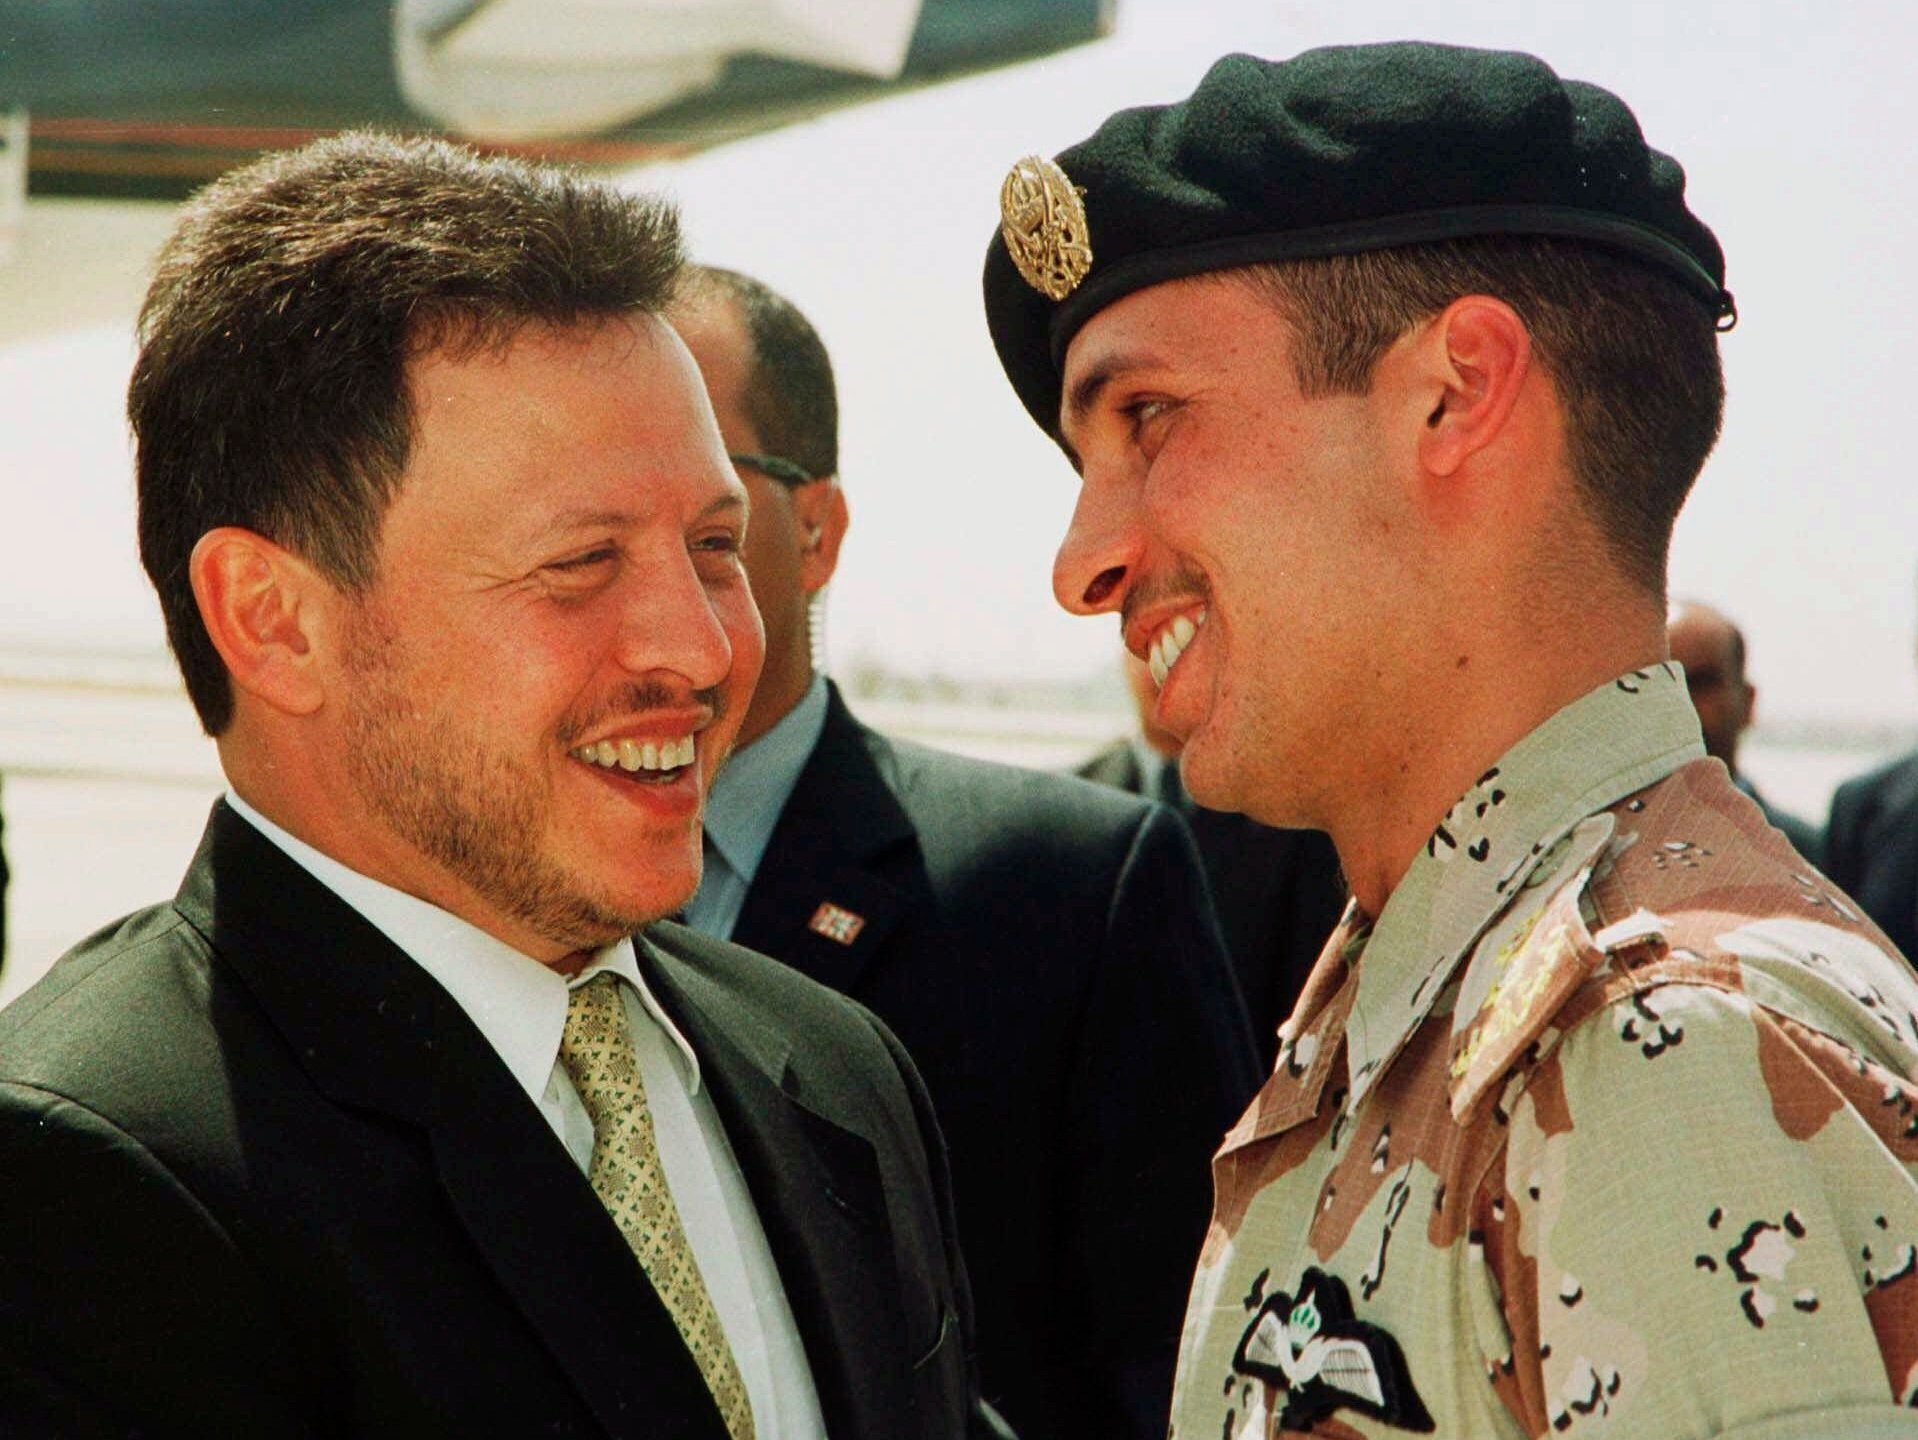 KING ABDULLAH II CROWN PRINCE HAMZEH